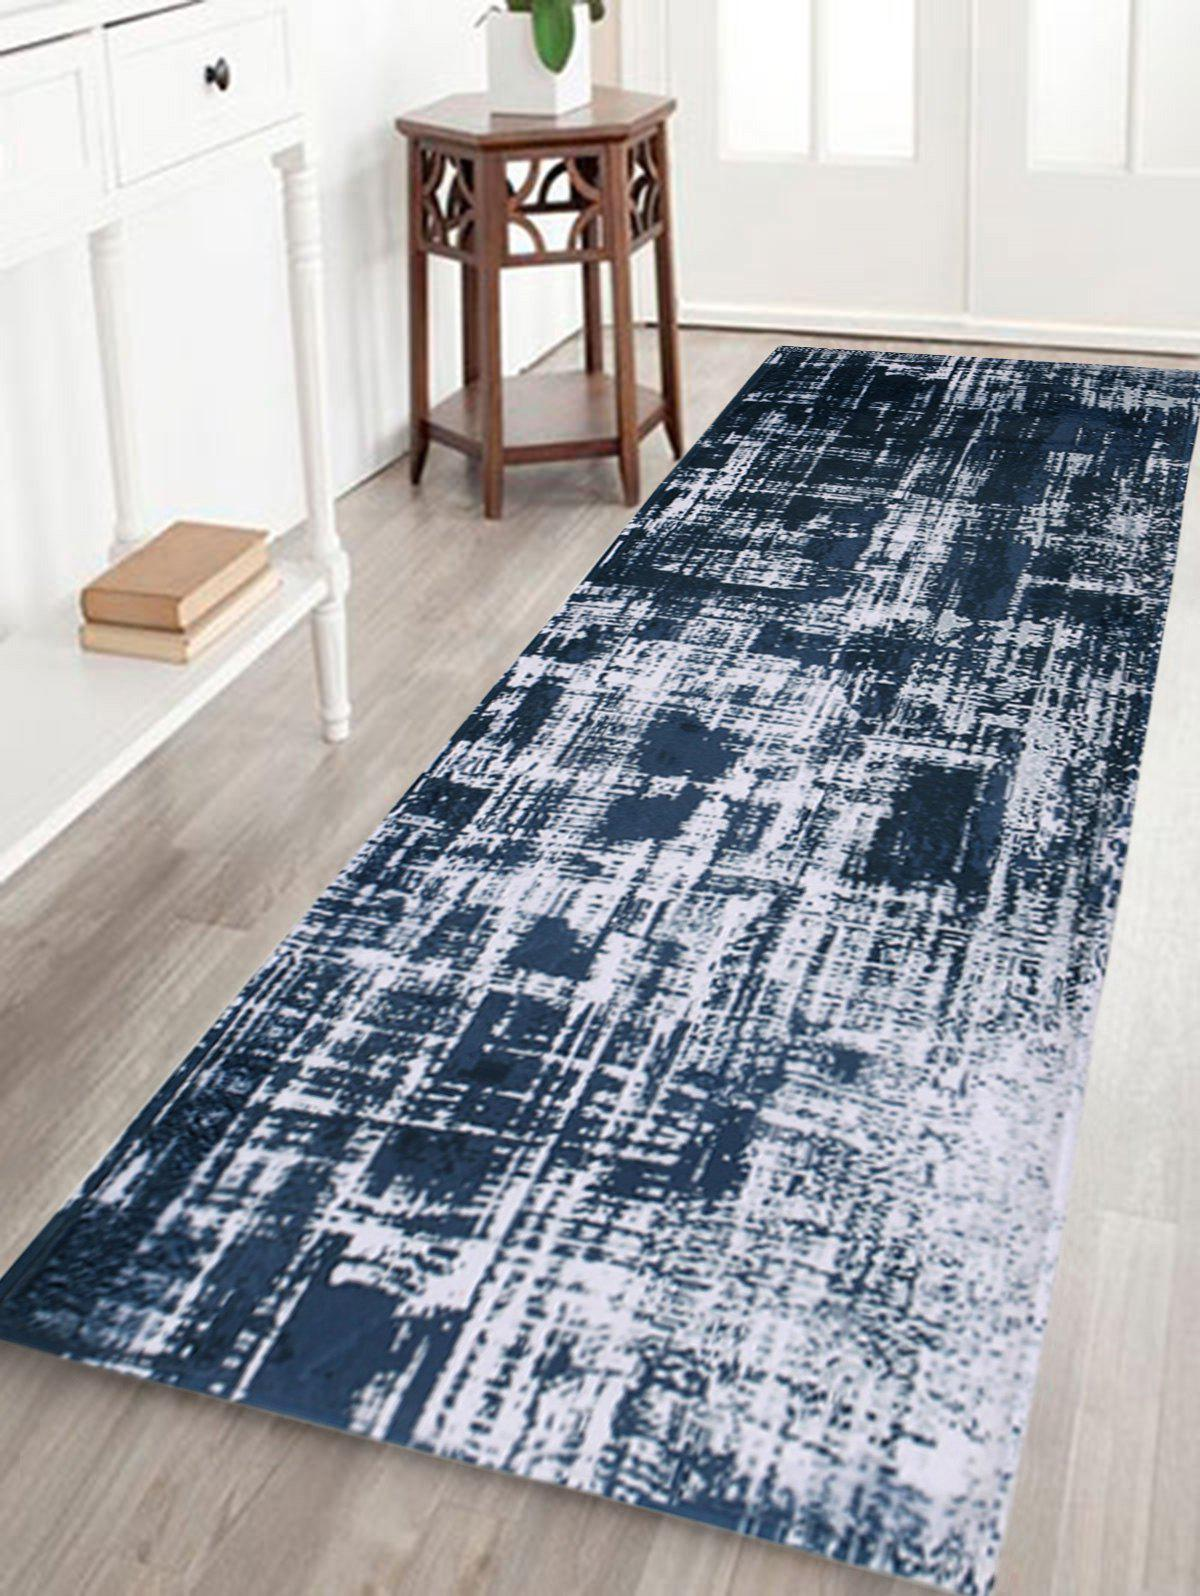 Coral Velvet Distressed Pattern Bathroom Rug - COLORMIX W24 INCH * L71 INCH